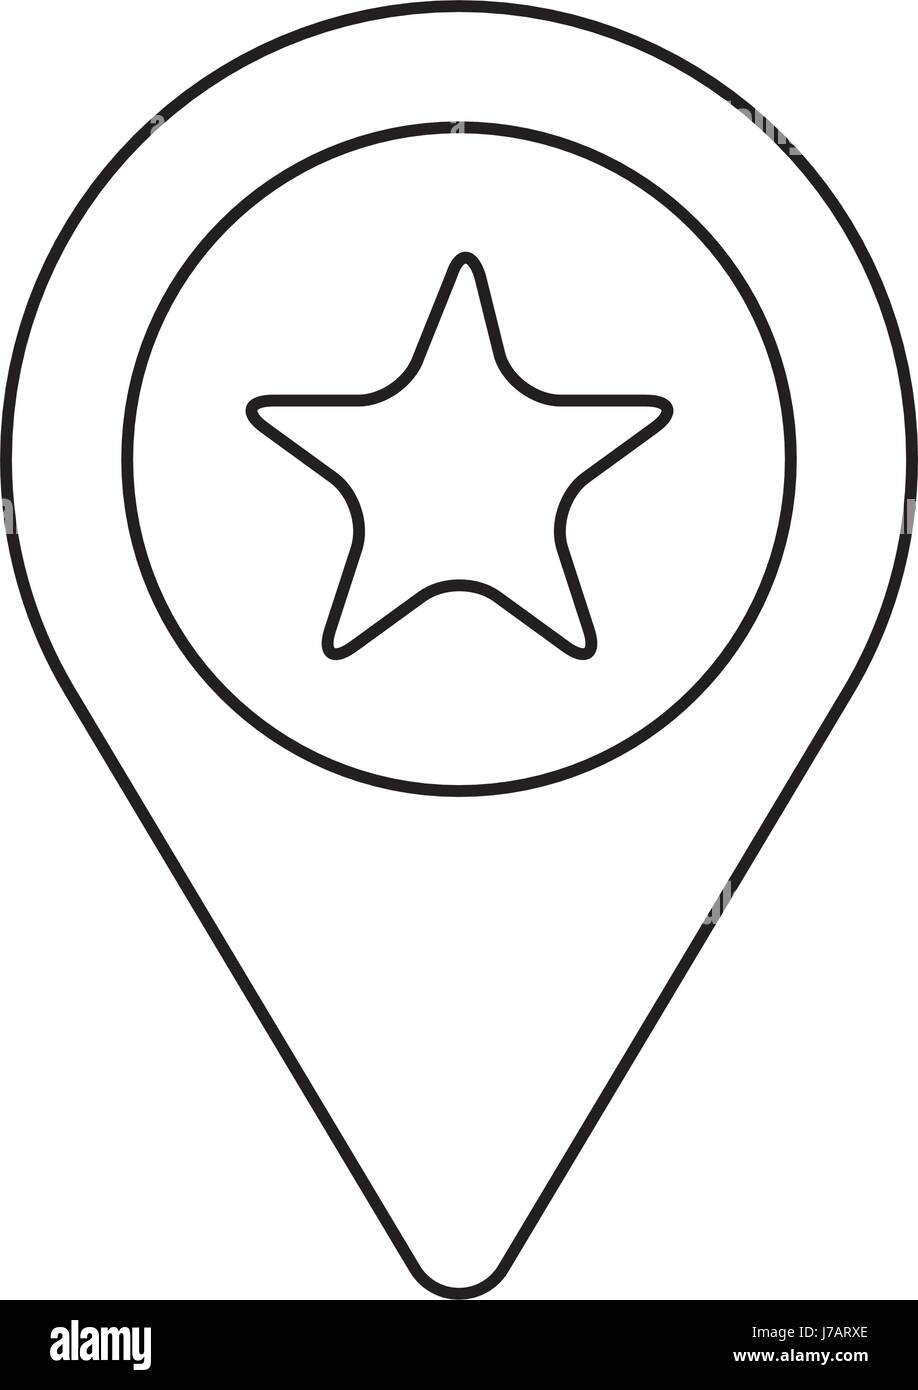 line search sign with star inside icon - Stock Vector